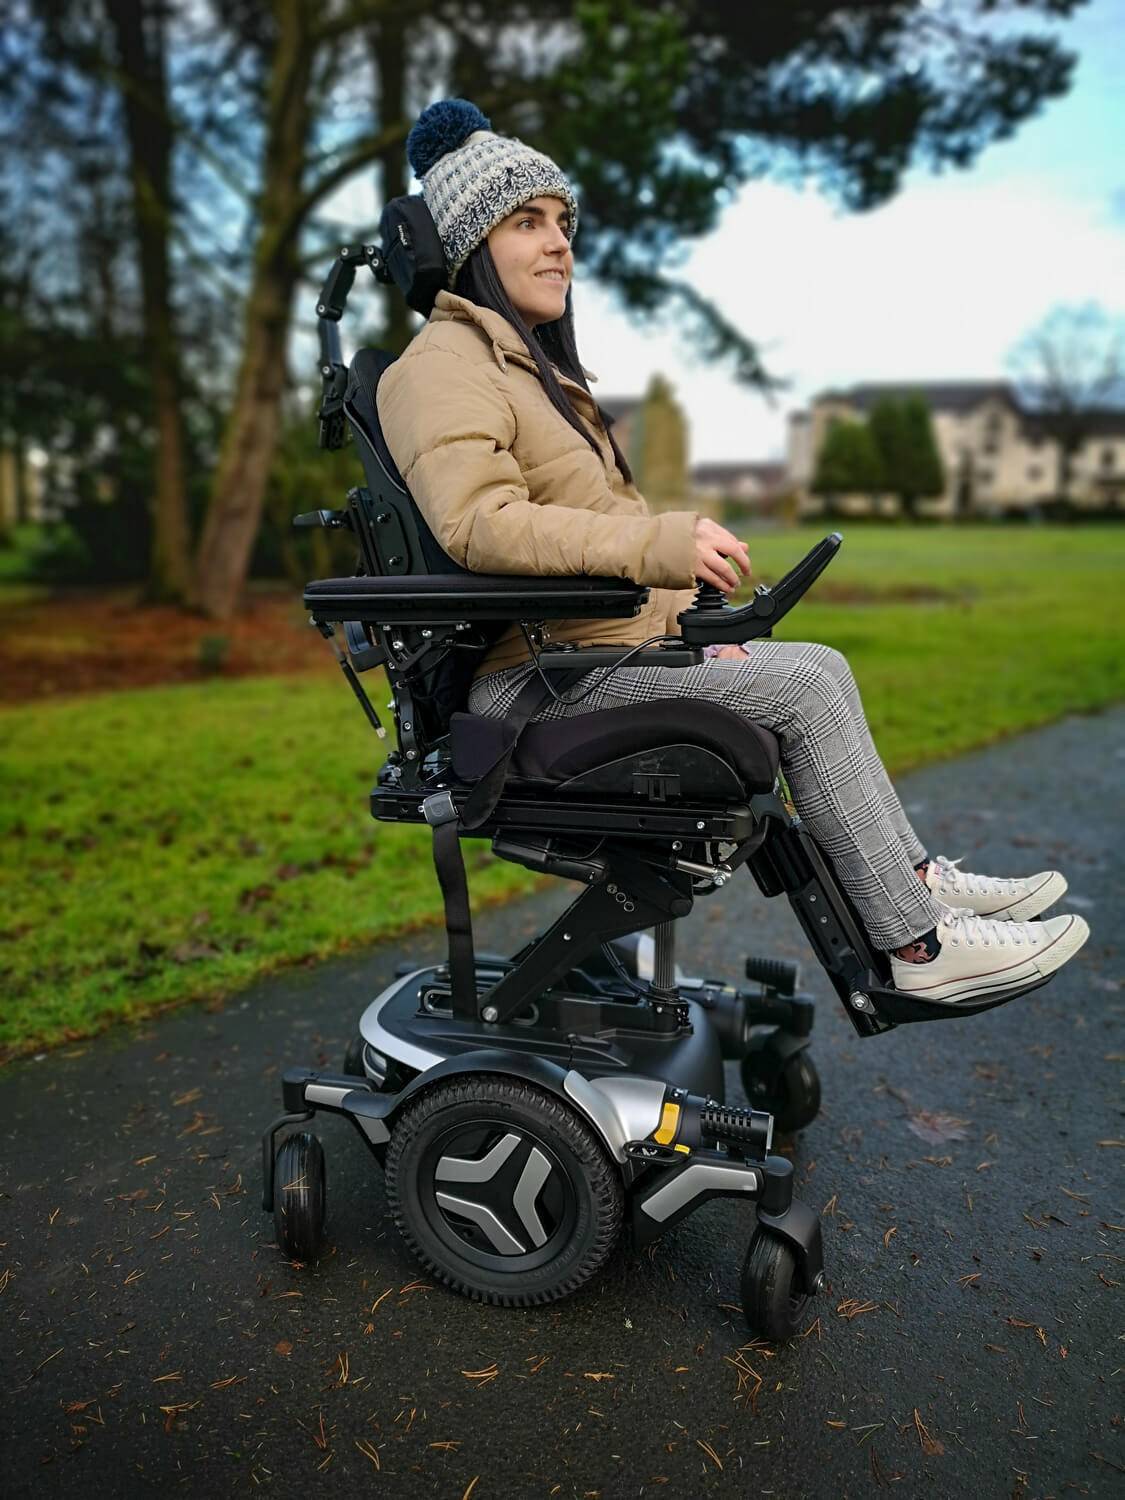 Emma, a wheelchair user sitting in a black and silver Permobil M3 wheelchair in a park. She is wearing a woolly hat, puffy jacket, black and white check trousers and white converse shoes. The wheelchair seat is elevated. Emma is smiling.